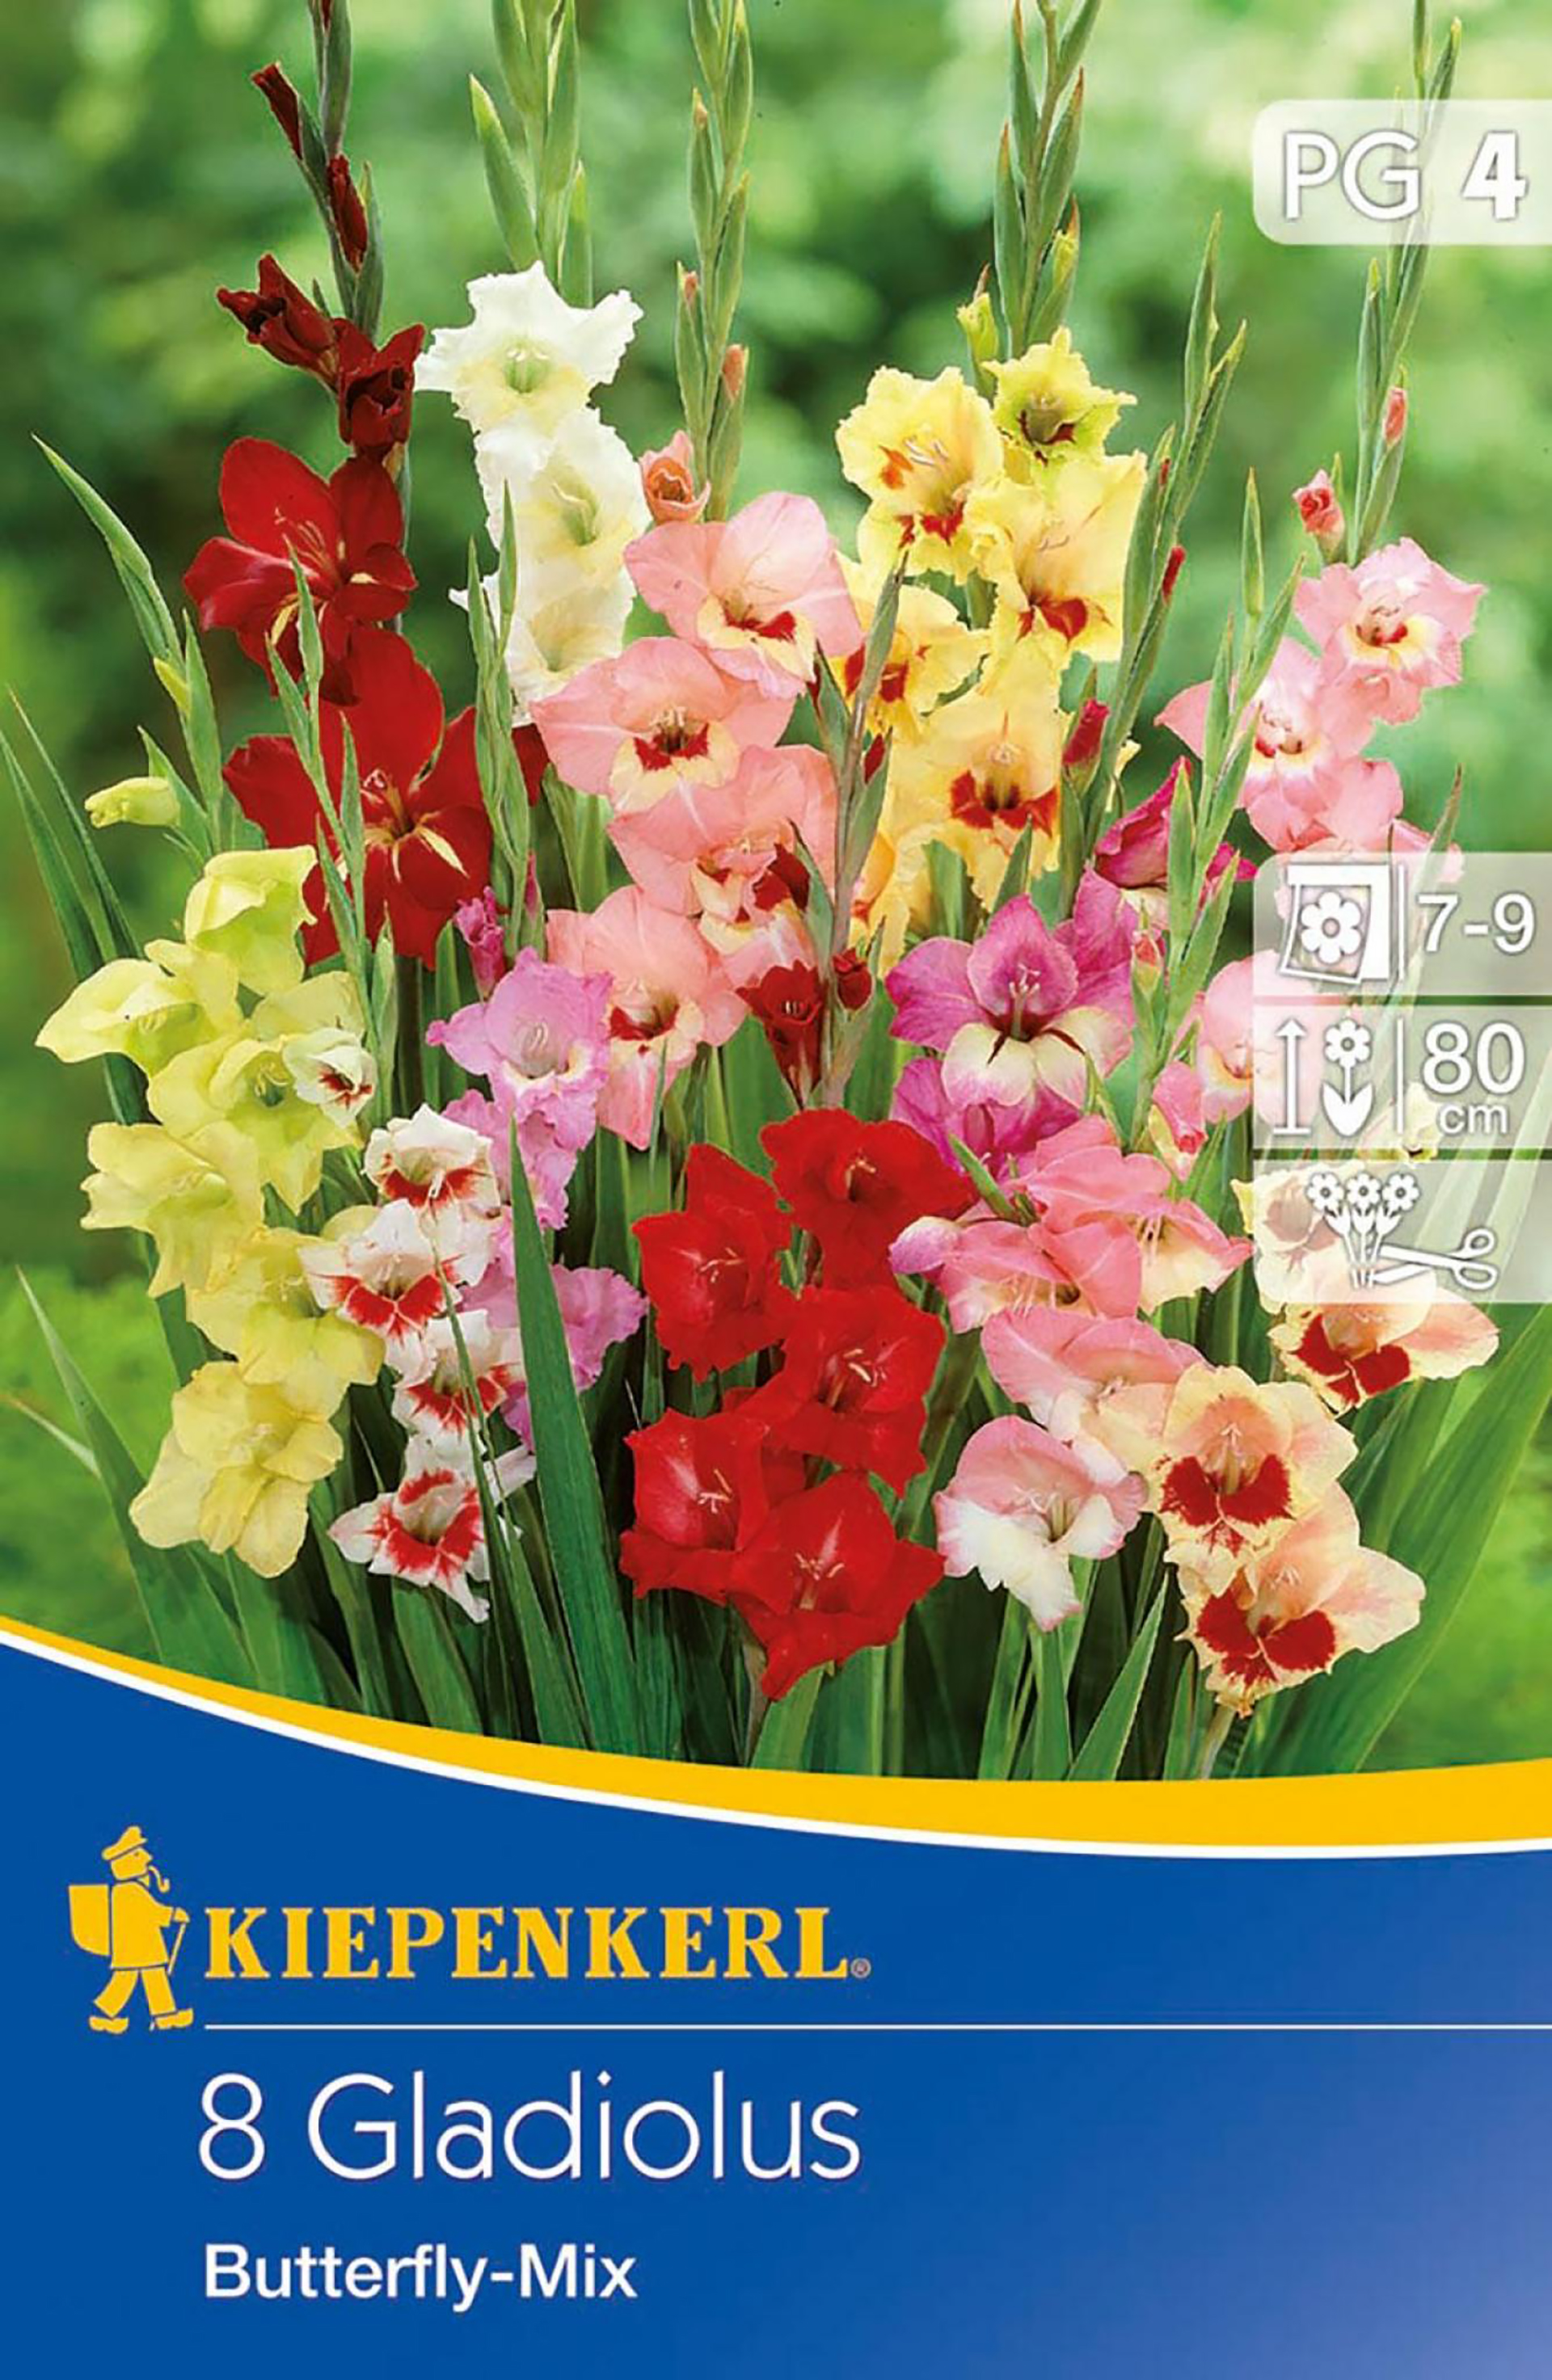 Gladiole Butterfly-Mix PG-4